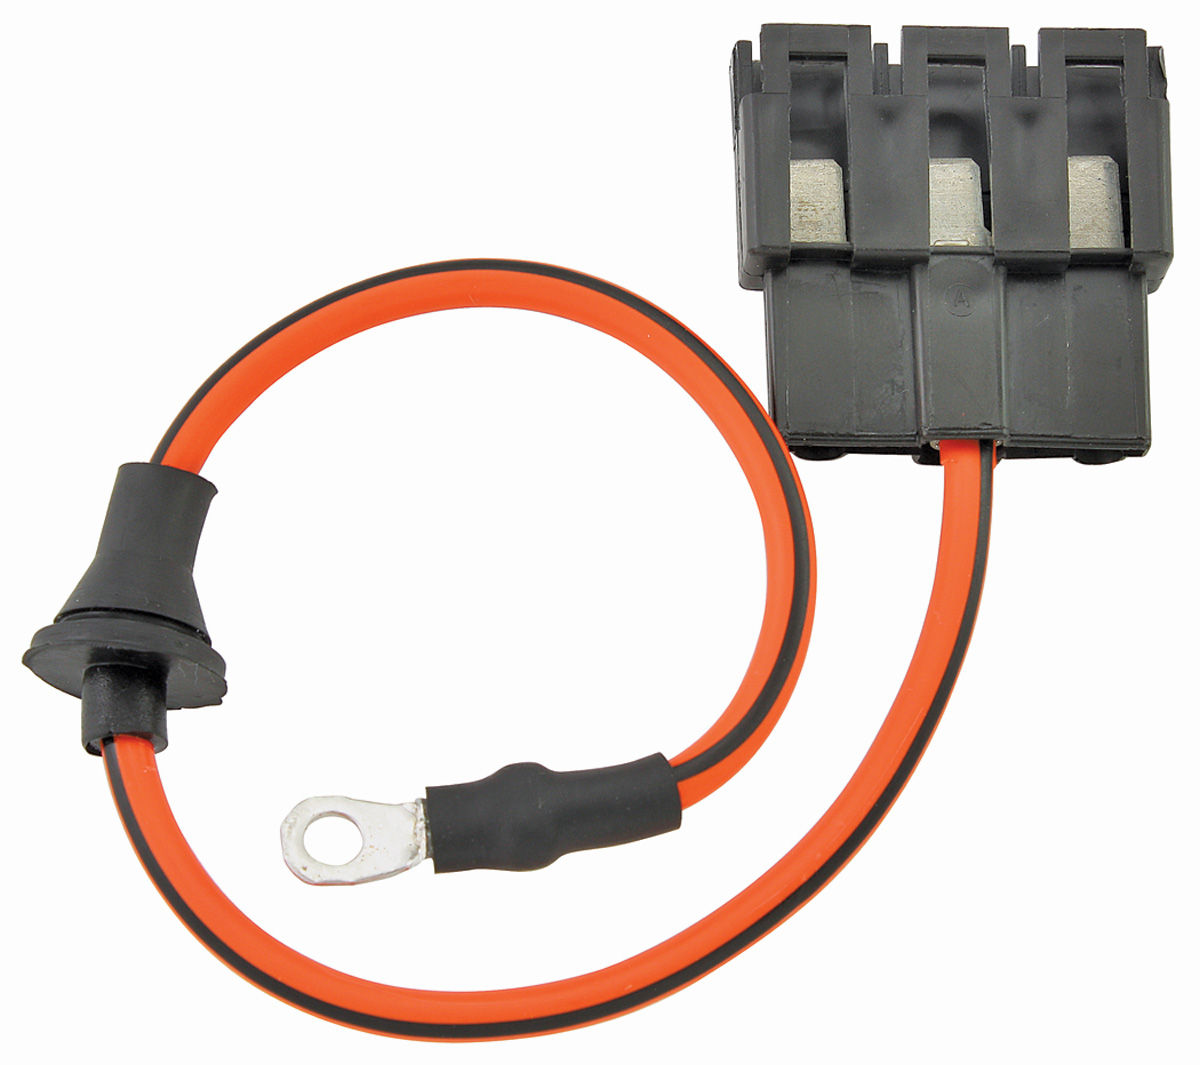 hight resolution of m h 1970 72 chevelle power accessory feed wire circuit breaker to rh opgi com 67 chevelle wiring harness 67 chevelle wiring harness